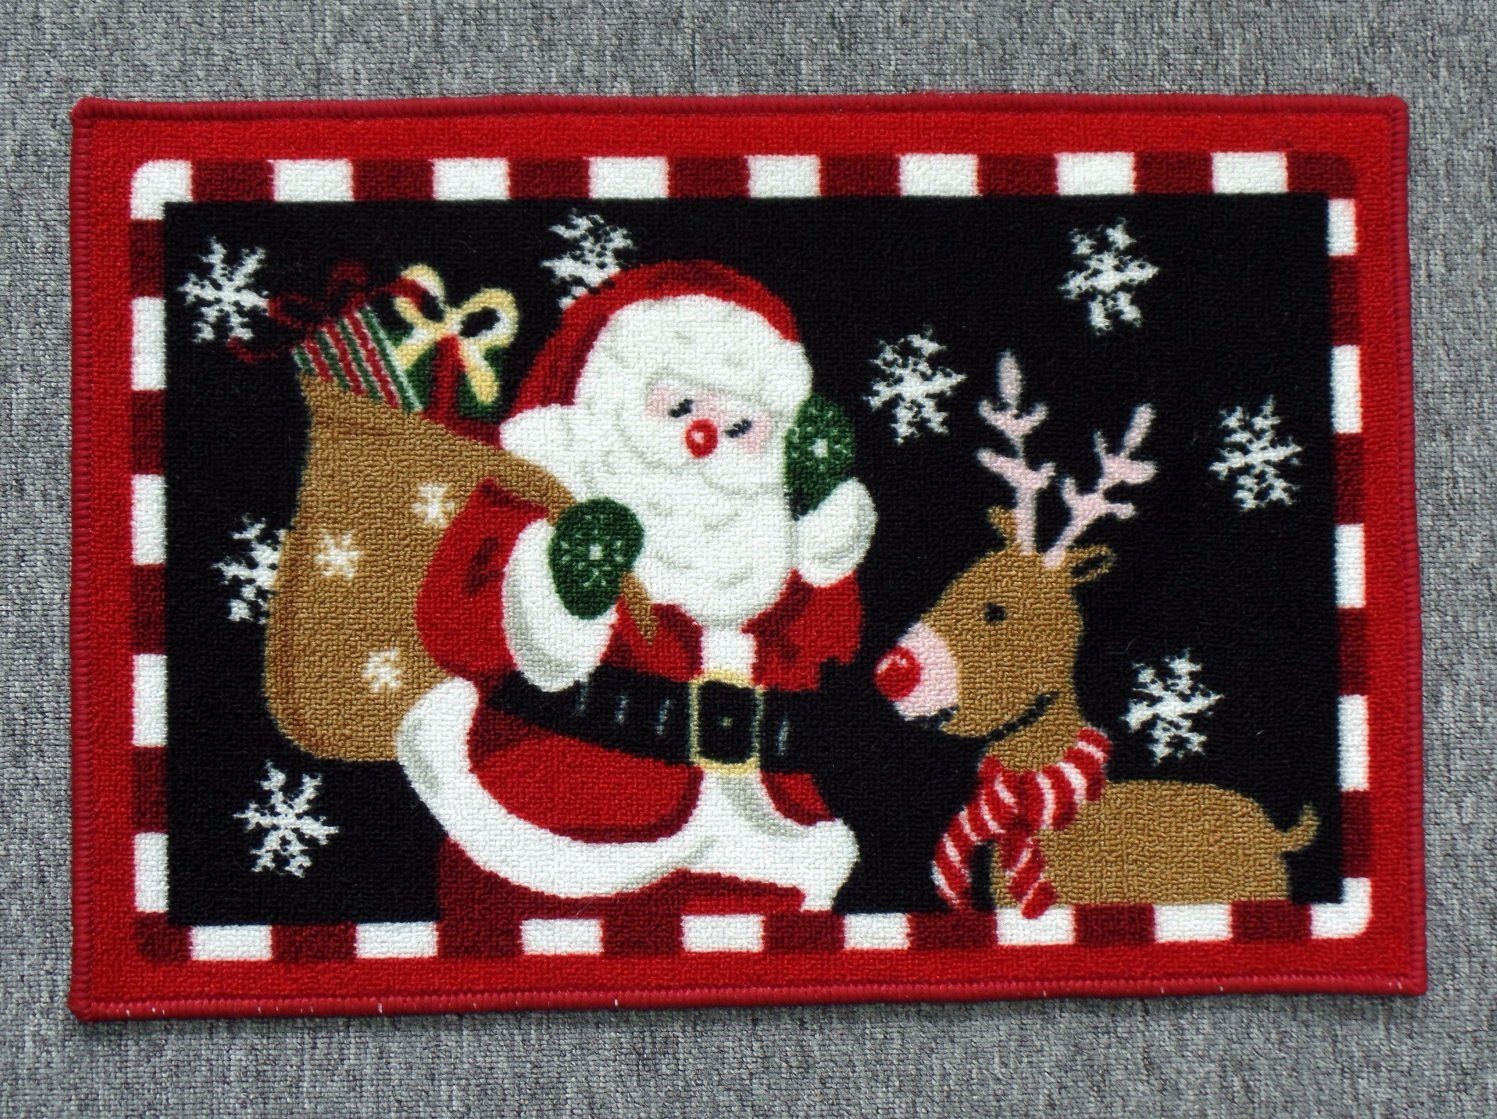 Nylon Rugs, with Christmas Patterns, #4